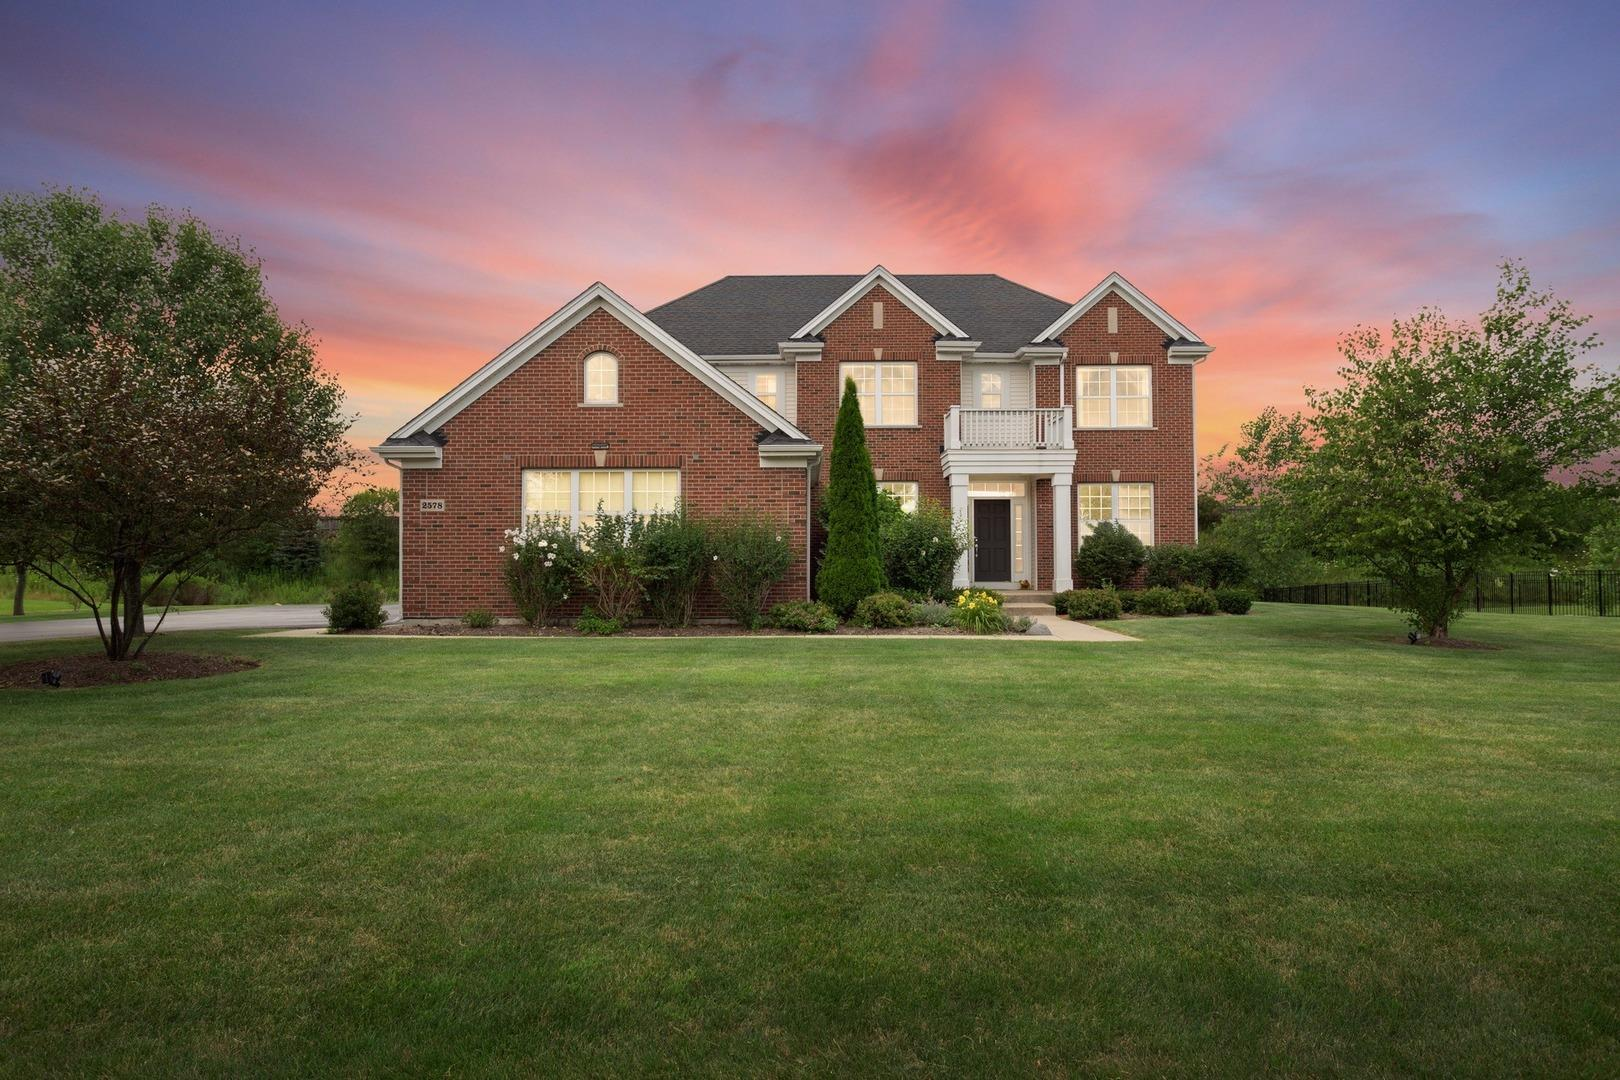 2578 Hastings Lane, Gurnee, IL 60031 - #: 10793885